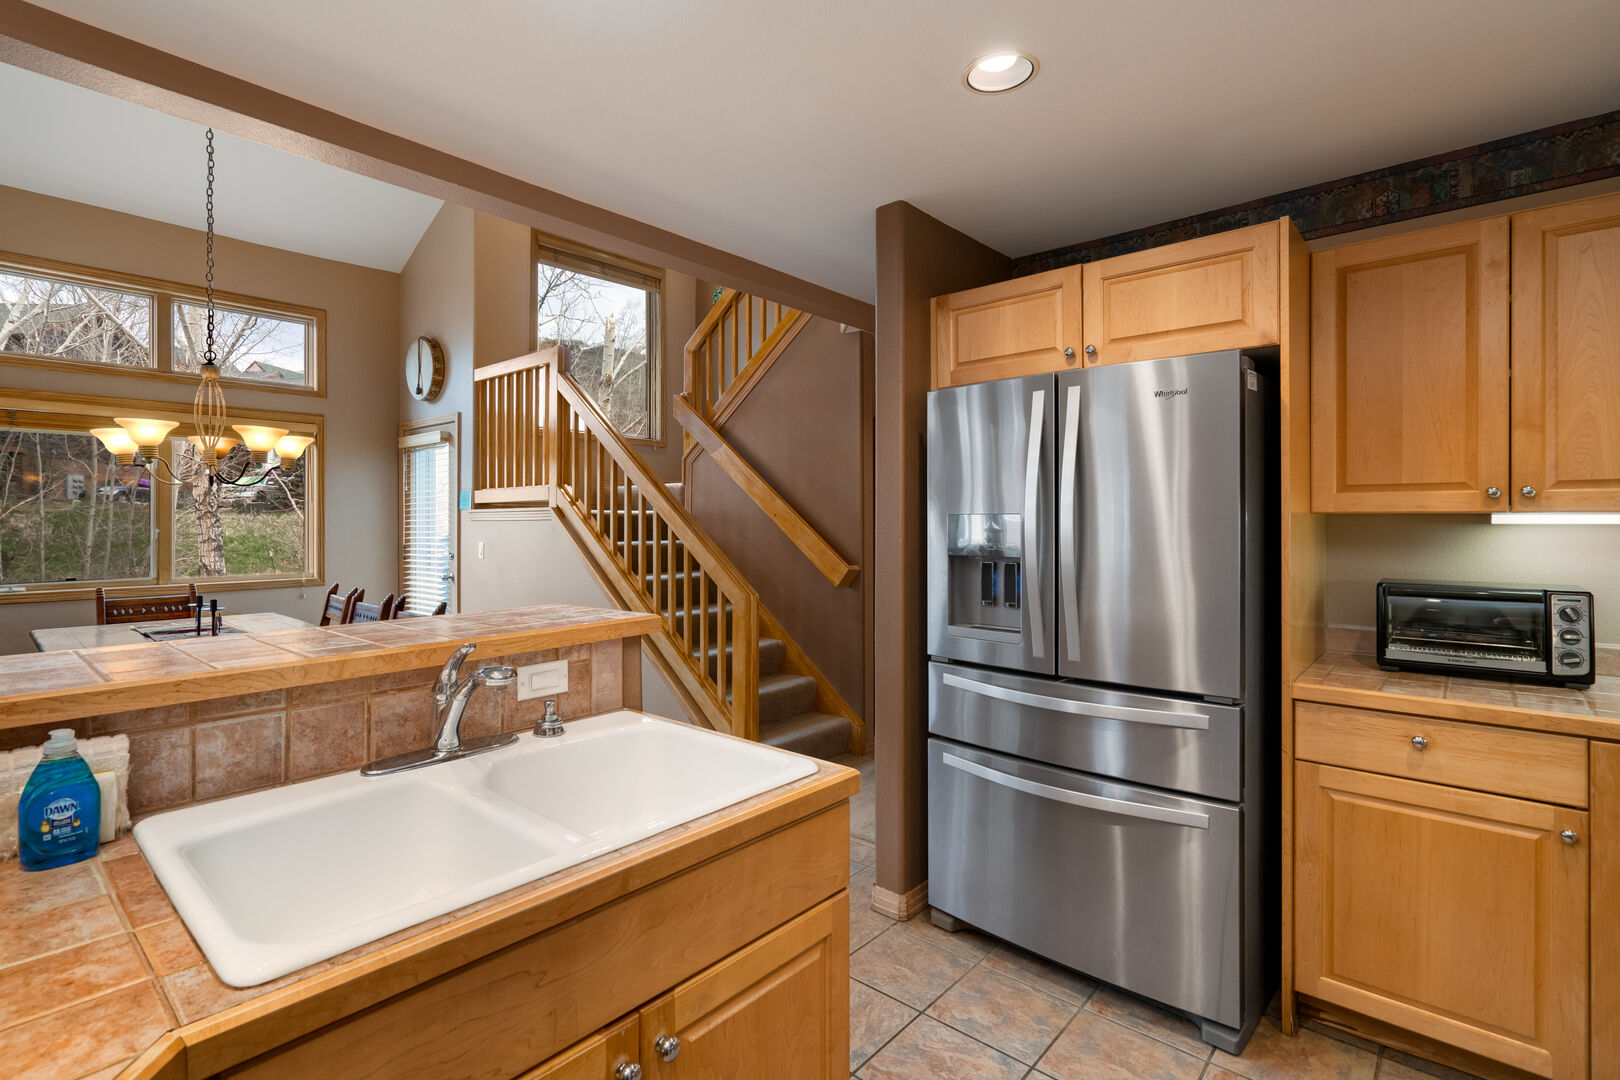 Stainless steel appliances compliment our well equipped kitchen.